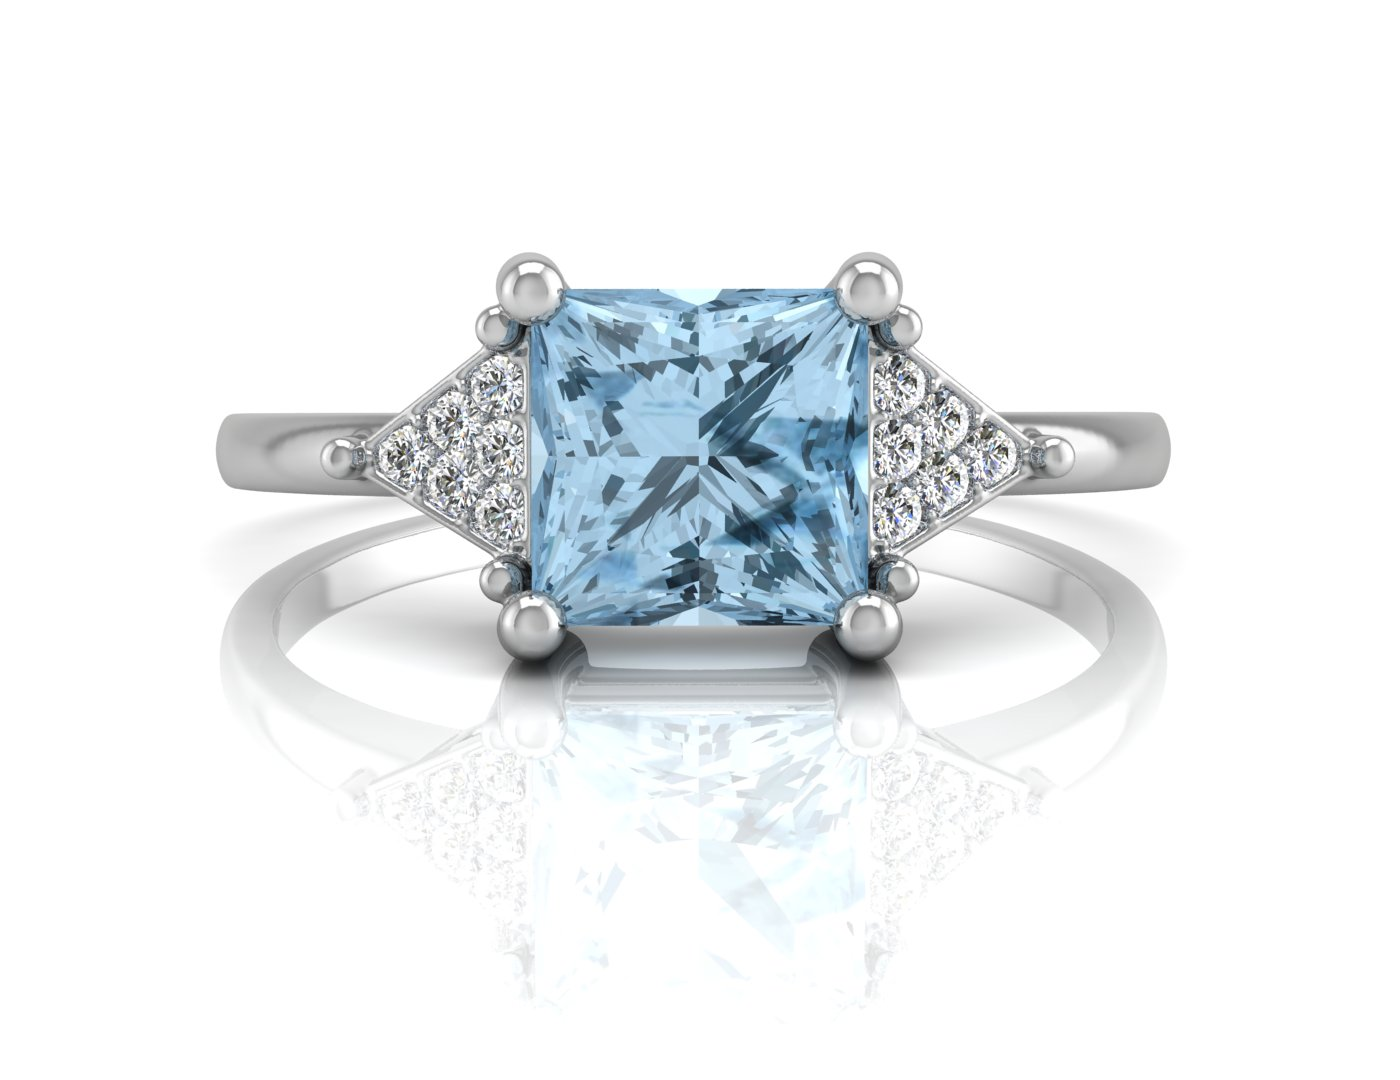 Lot 51 - 9ct White Gold Diamond And Blue Topaz Ring